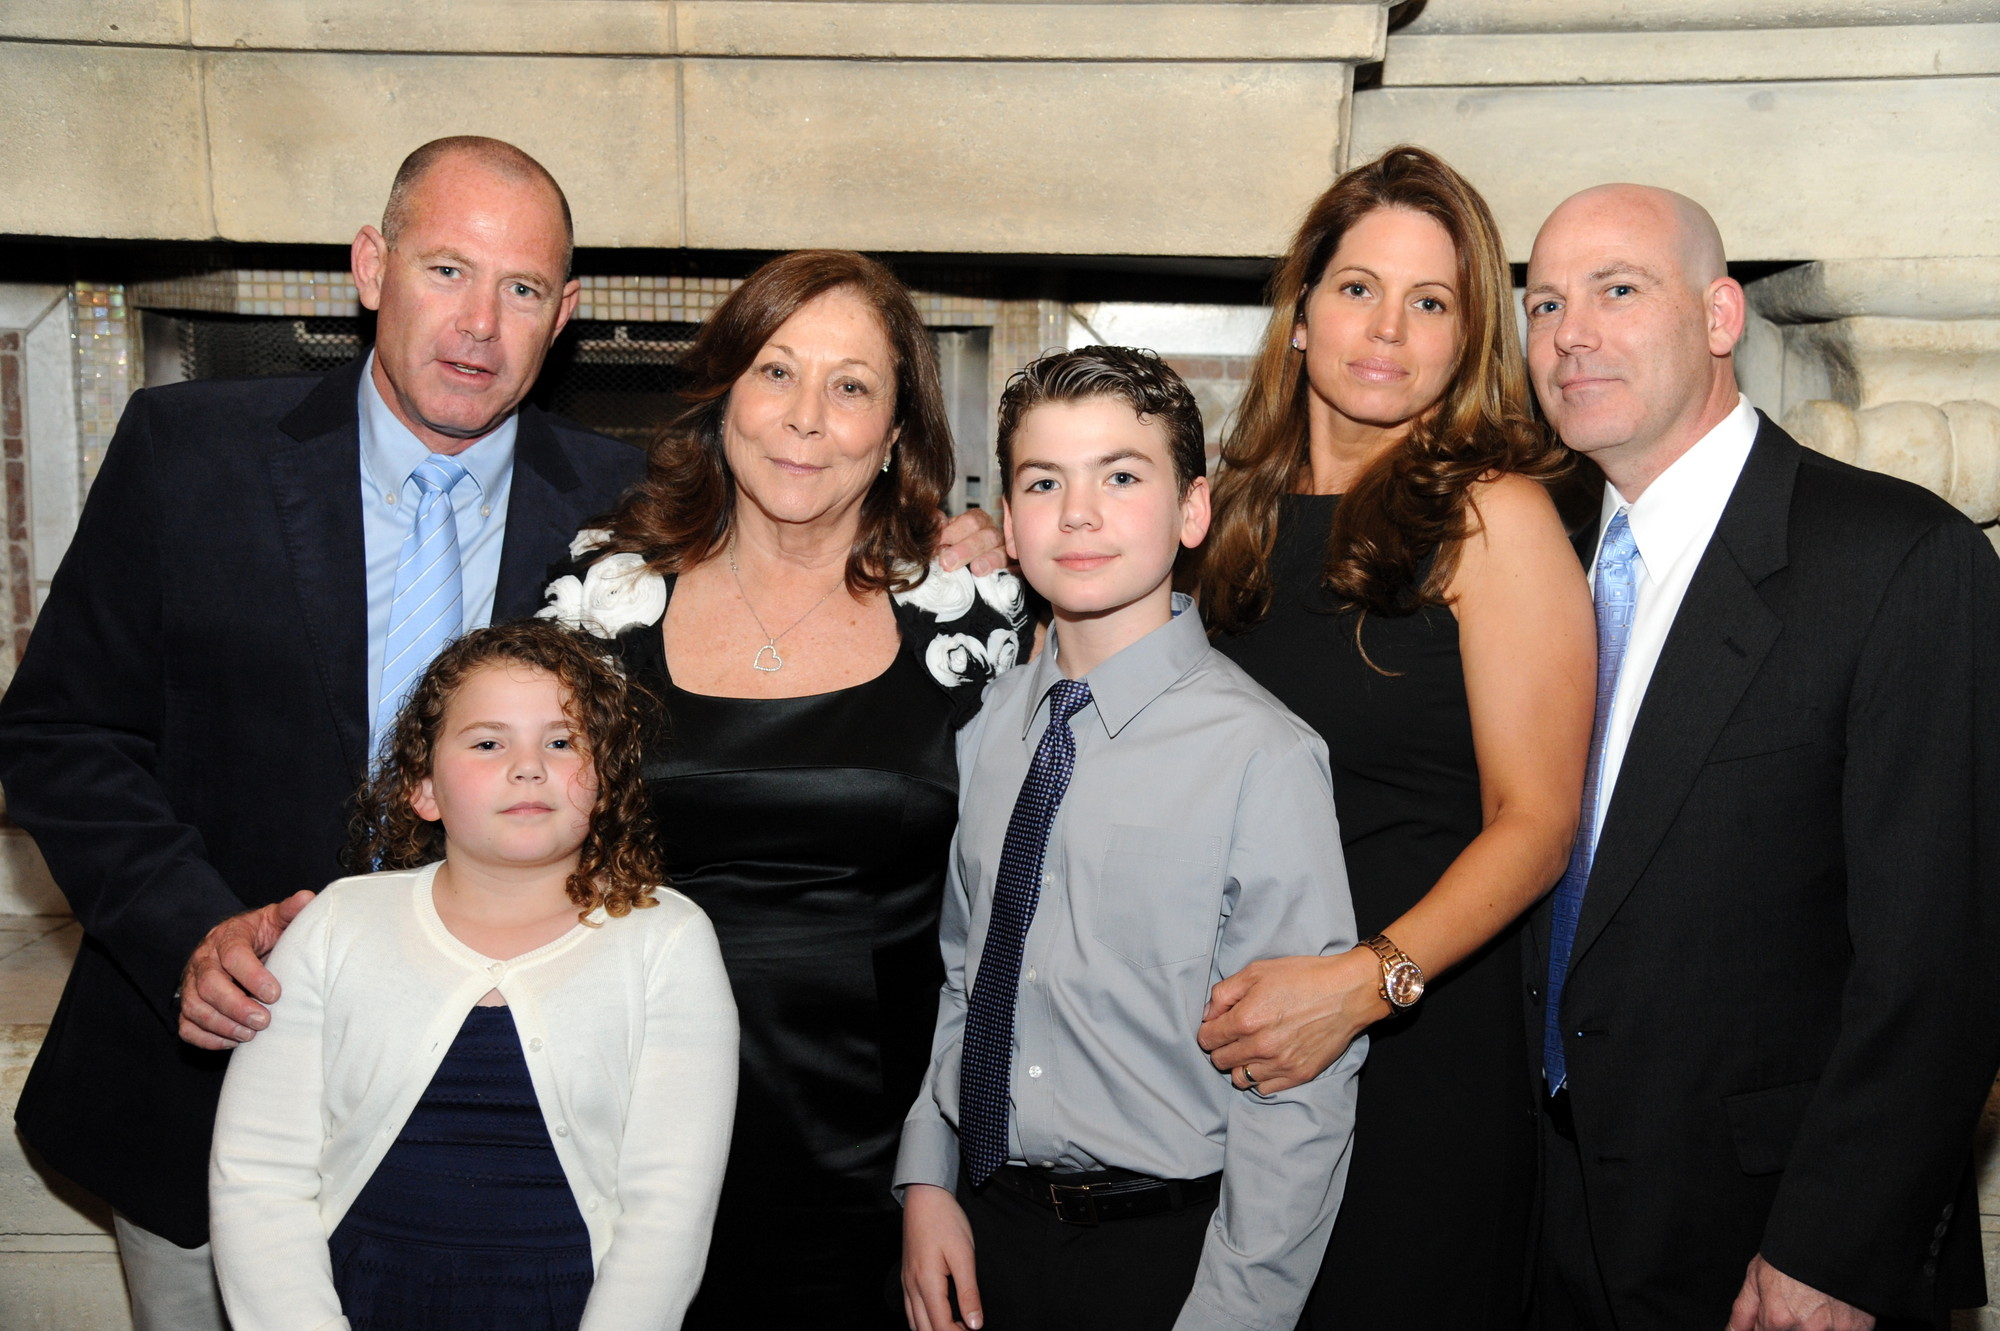 The JCC of the Greater Five Towns held its annual dinner at the Sephardic Temple on May 1. Retiring Executive Director Rina Shkolnik, third from left, with her family Tsachi Barber, Avner Barber, Einat Barber, Tom, 12, and Ella, 9.